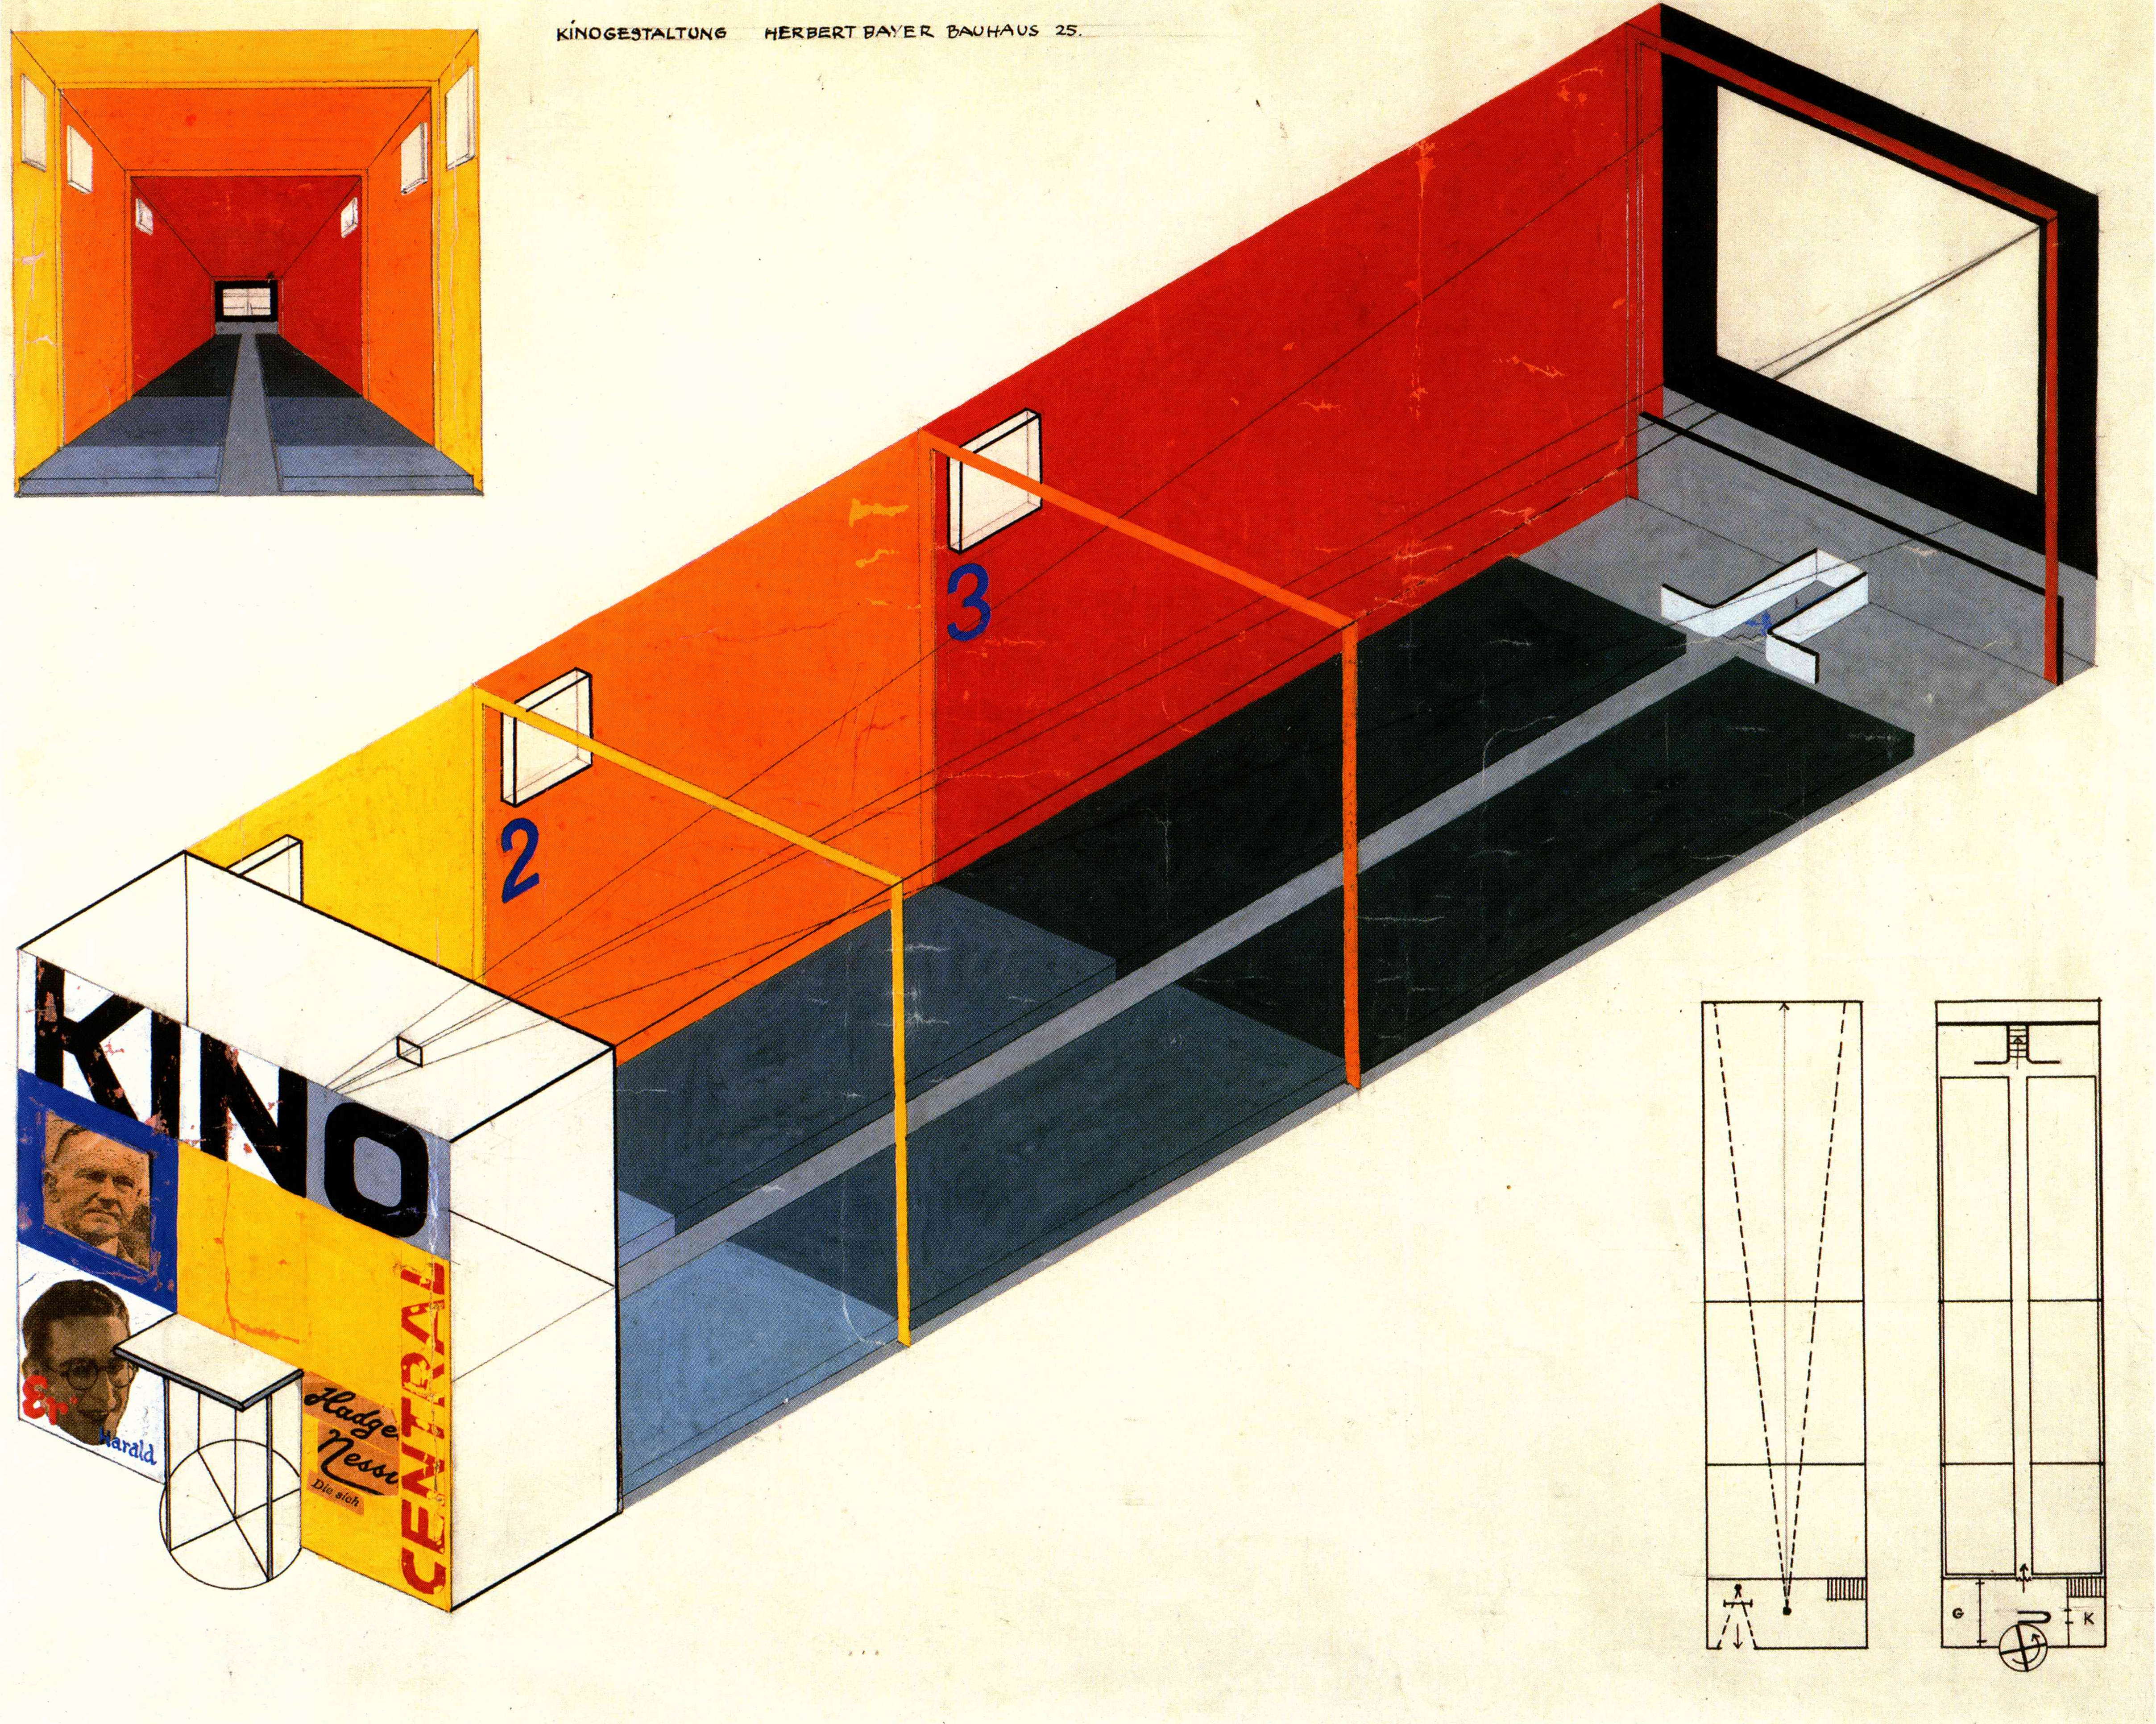 Herbert Bayer, Design for a cinema, 1924-1925, Gouache, cut-and-pasted photomechanical and print elements, ink, and pencil on paper, 54.6 x 61cm